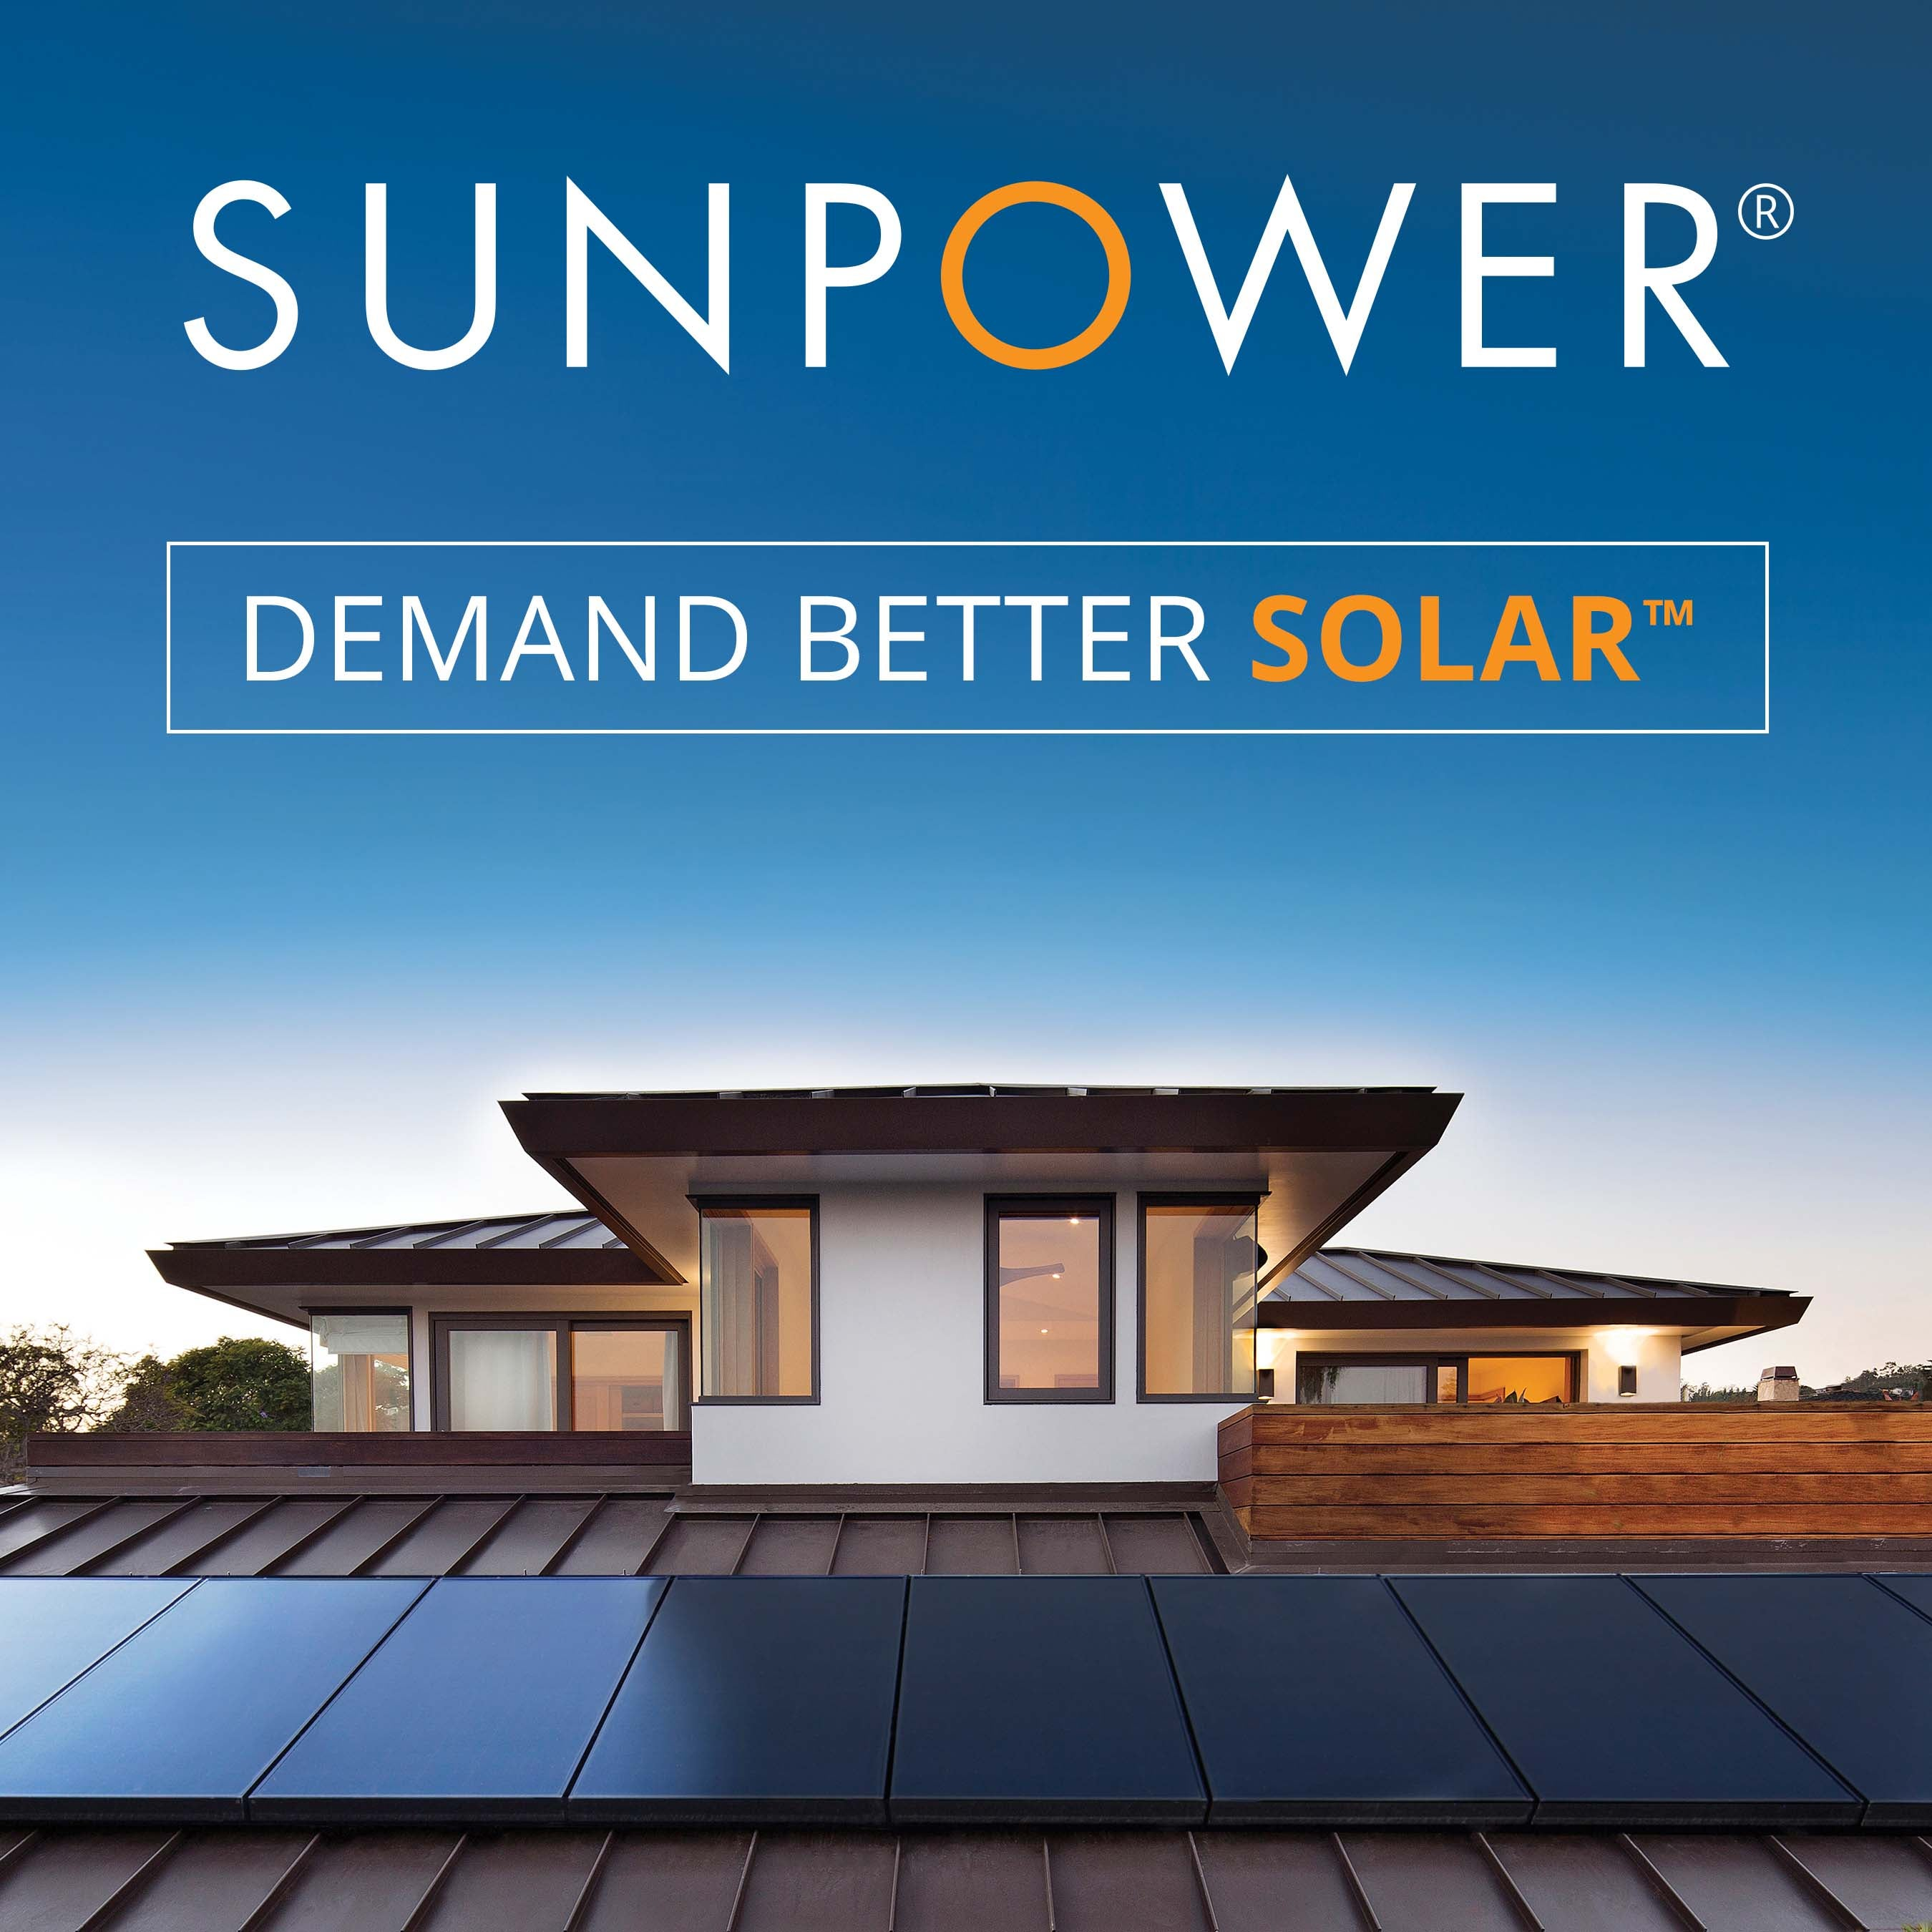 Demand Better Solar. SunPower ad